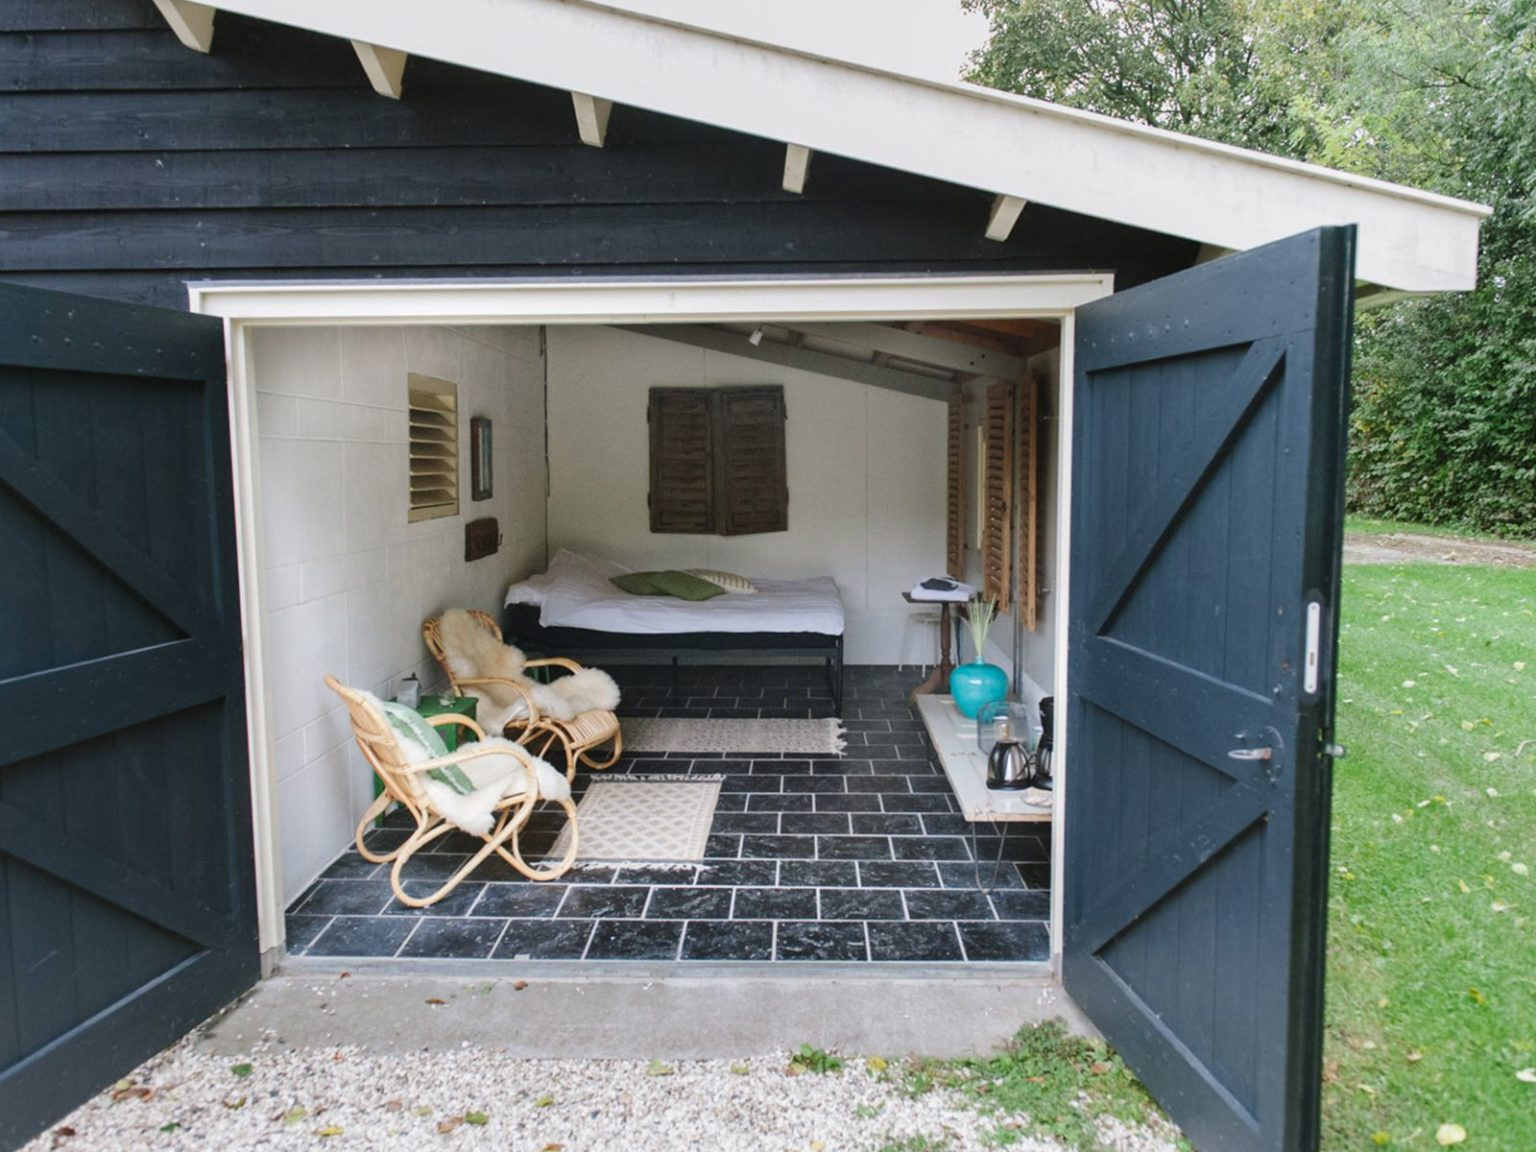 bijgroengeluk-beelden-accommodatie-accommodation-tiny-lodge-0018--WEB-lisenkalami-4